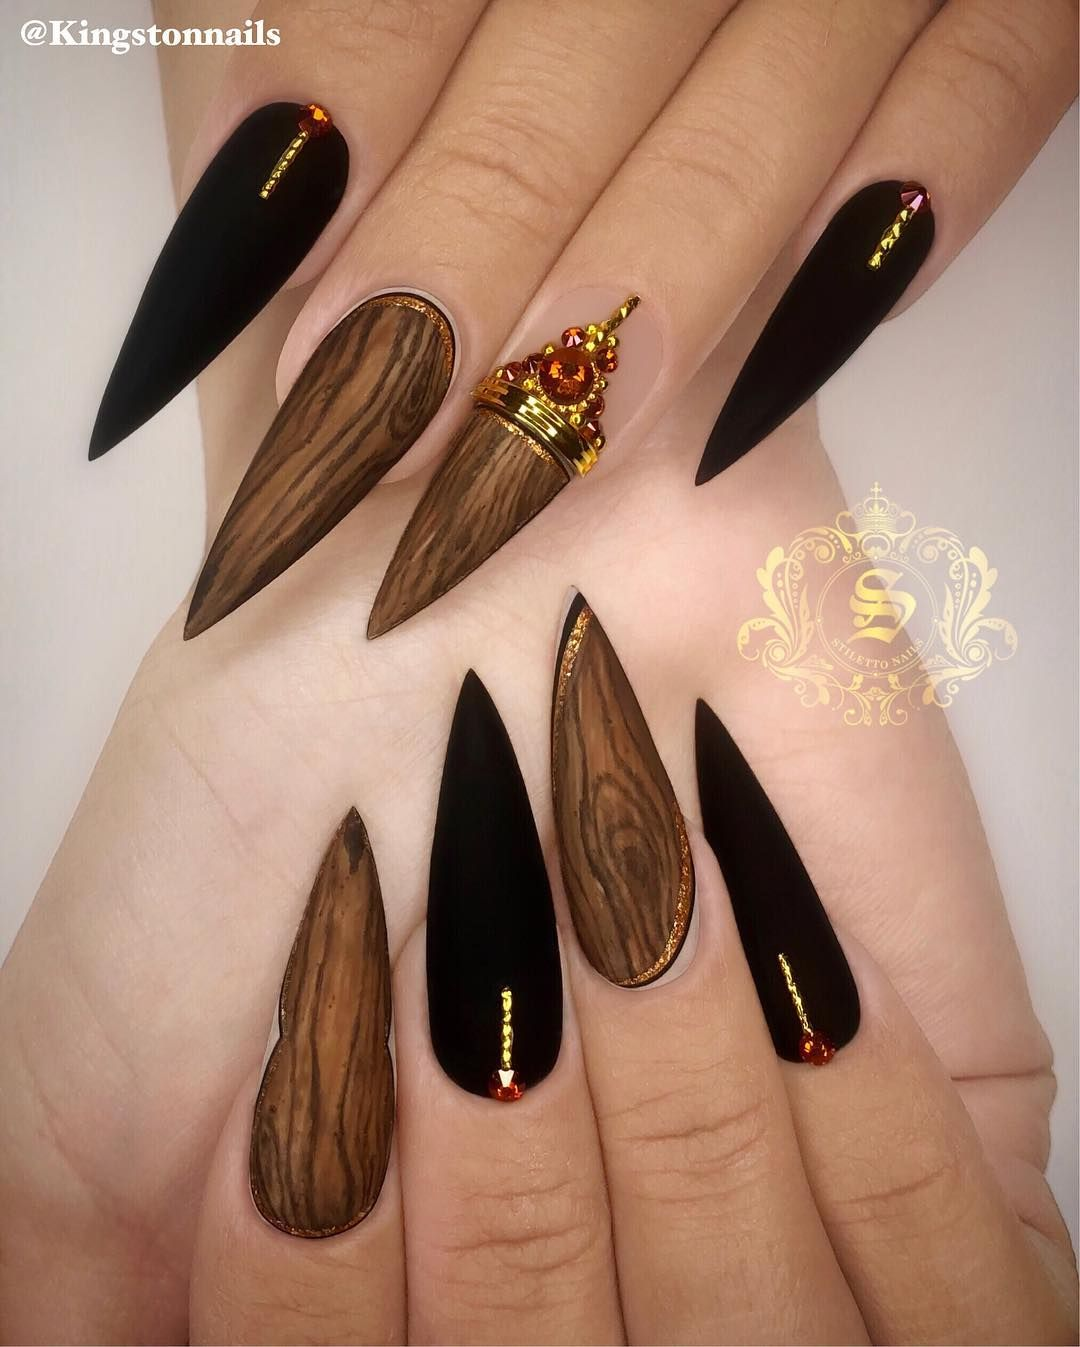 Kingston Ceo Of Stiletto Nails On Instagram What Kind Of Textures U Think This Is Stiletto Nails Designs Stiletto Nails Trendy Nails